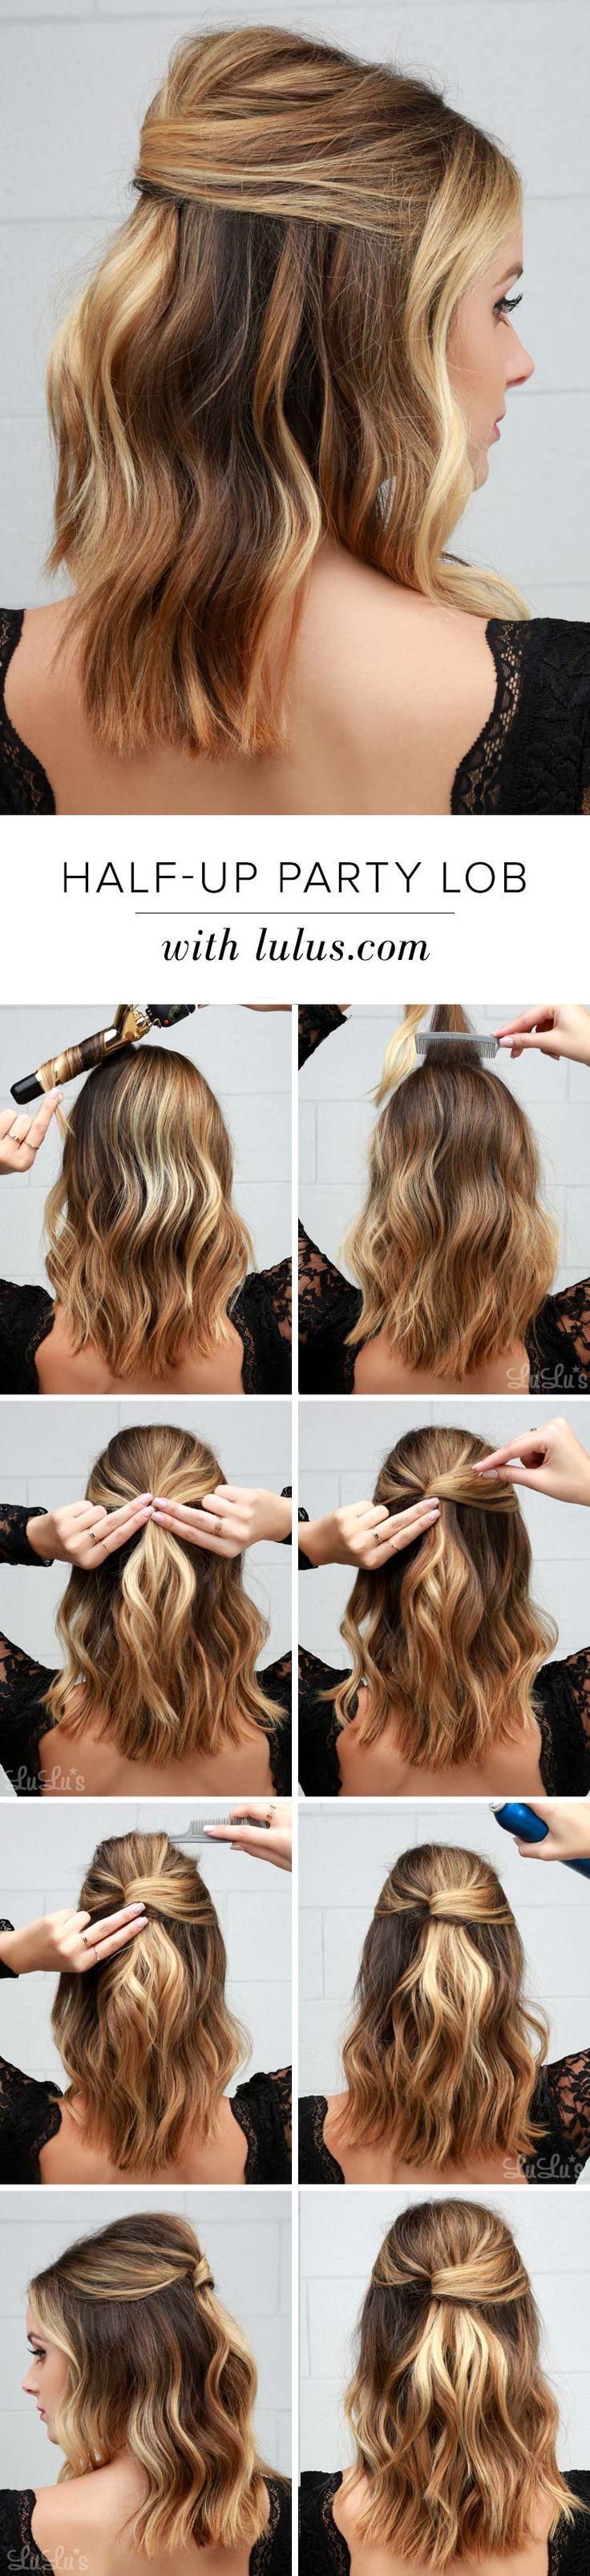 Best 58 Hairstyles ideas on Pinterest